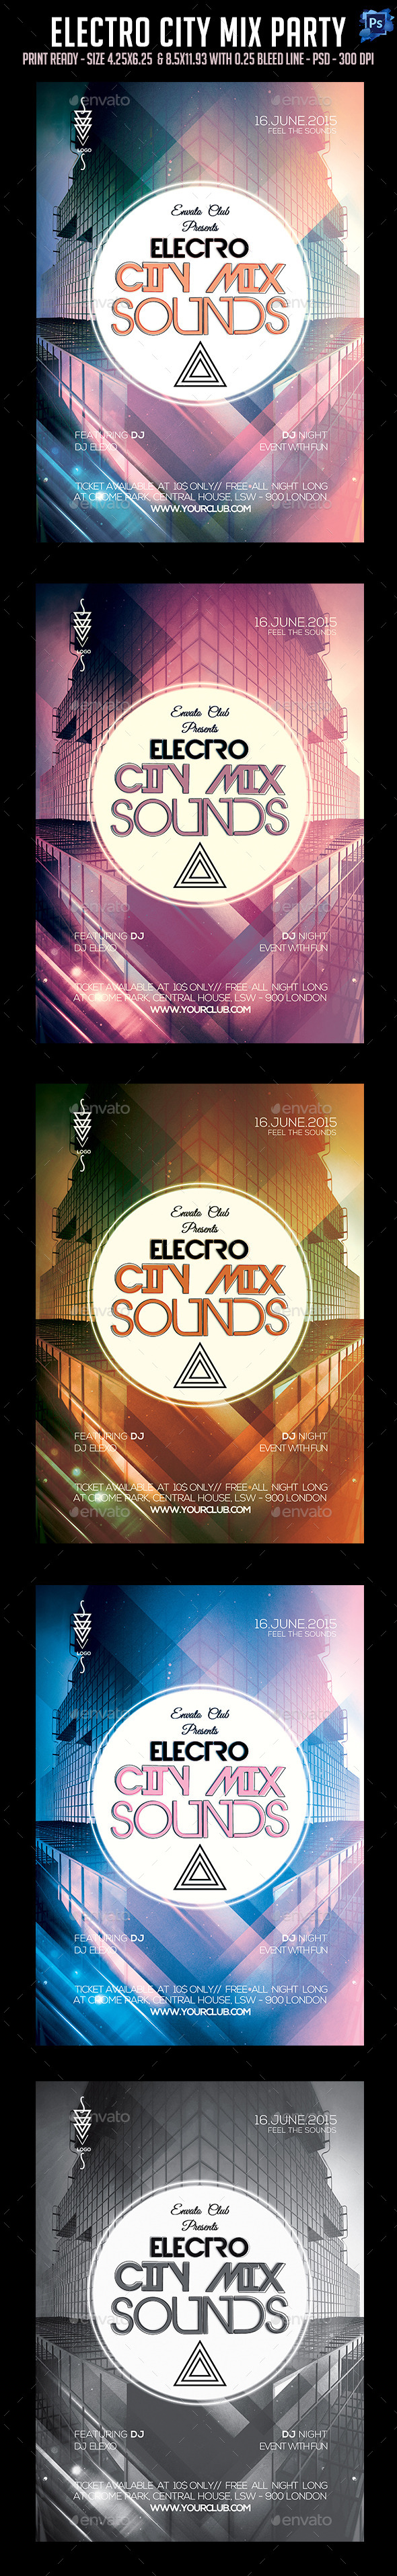 Electro City Mix Sounds Flyer - Clubs & Parties Events